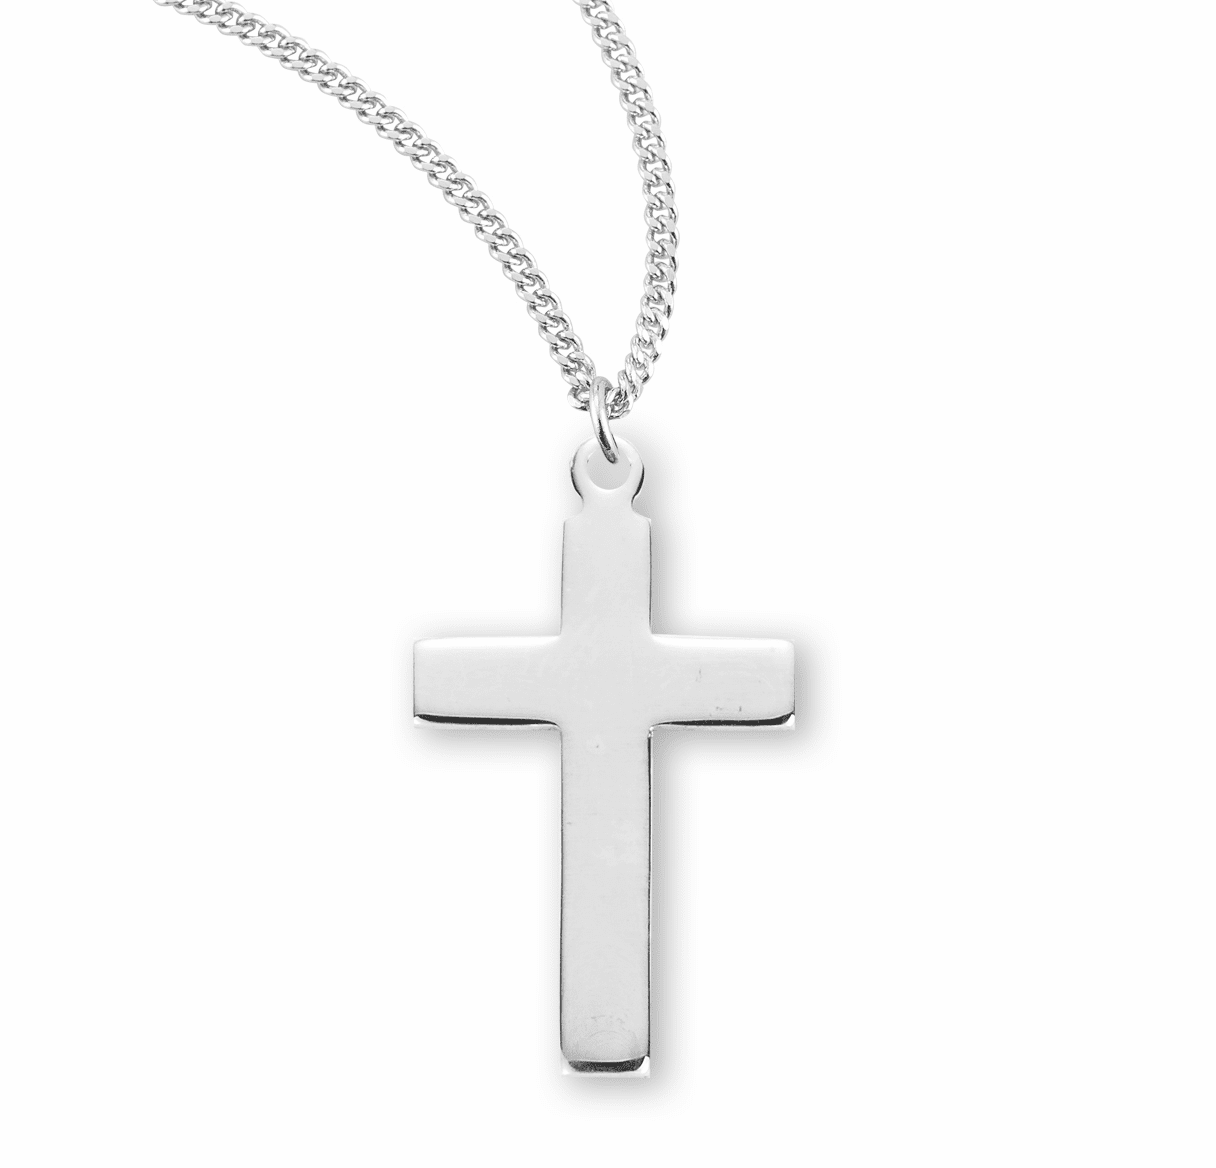 HMH Religious Medium Plain High Polished Sterling Silver Cross Necklace